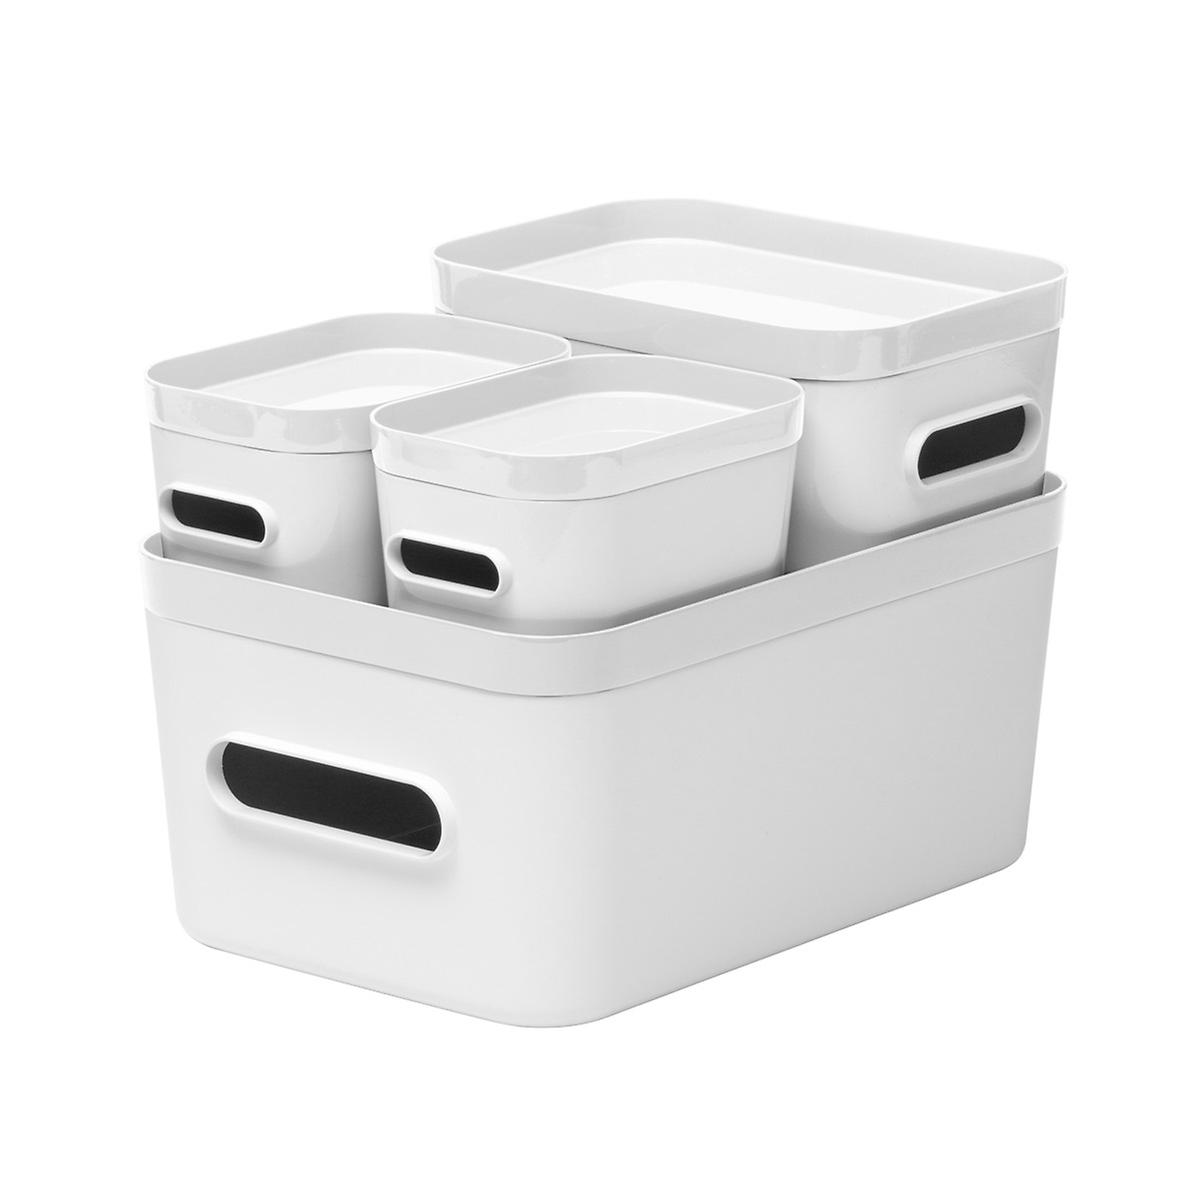 white compact plastic bins 4 pack with white lids the. Black Bedroom Furniture Sets. Home Design Ideas